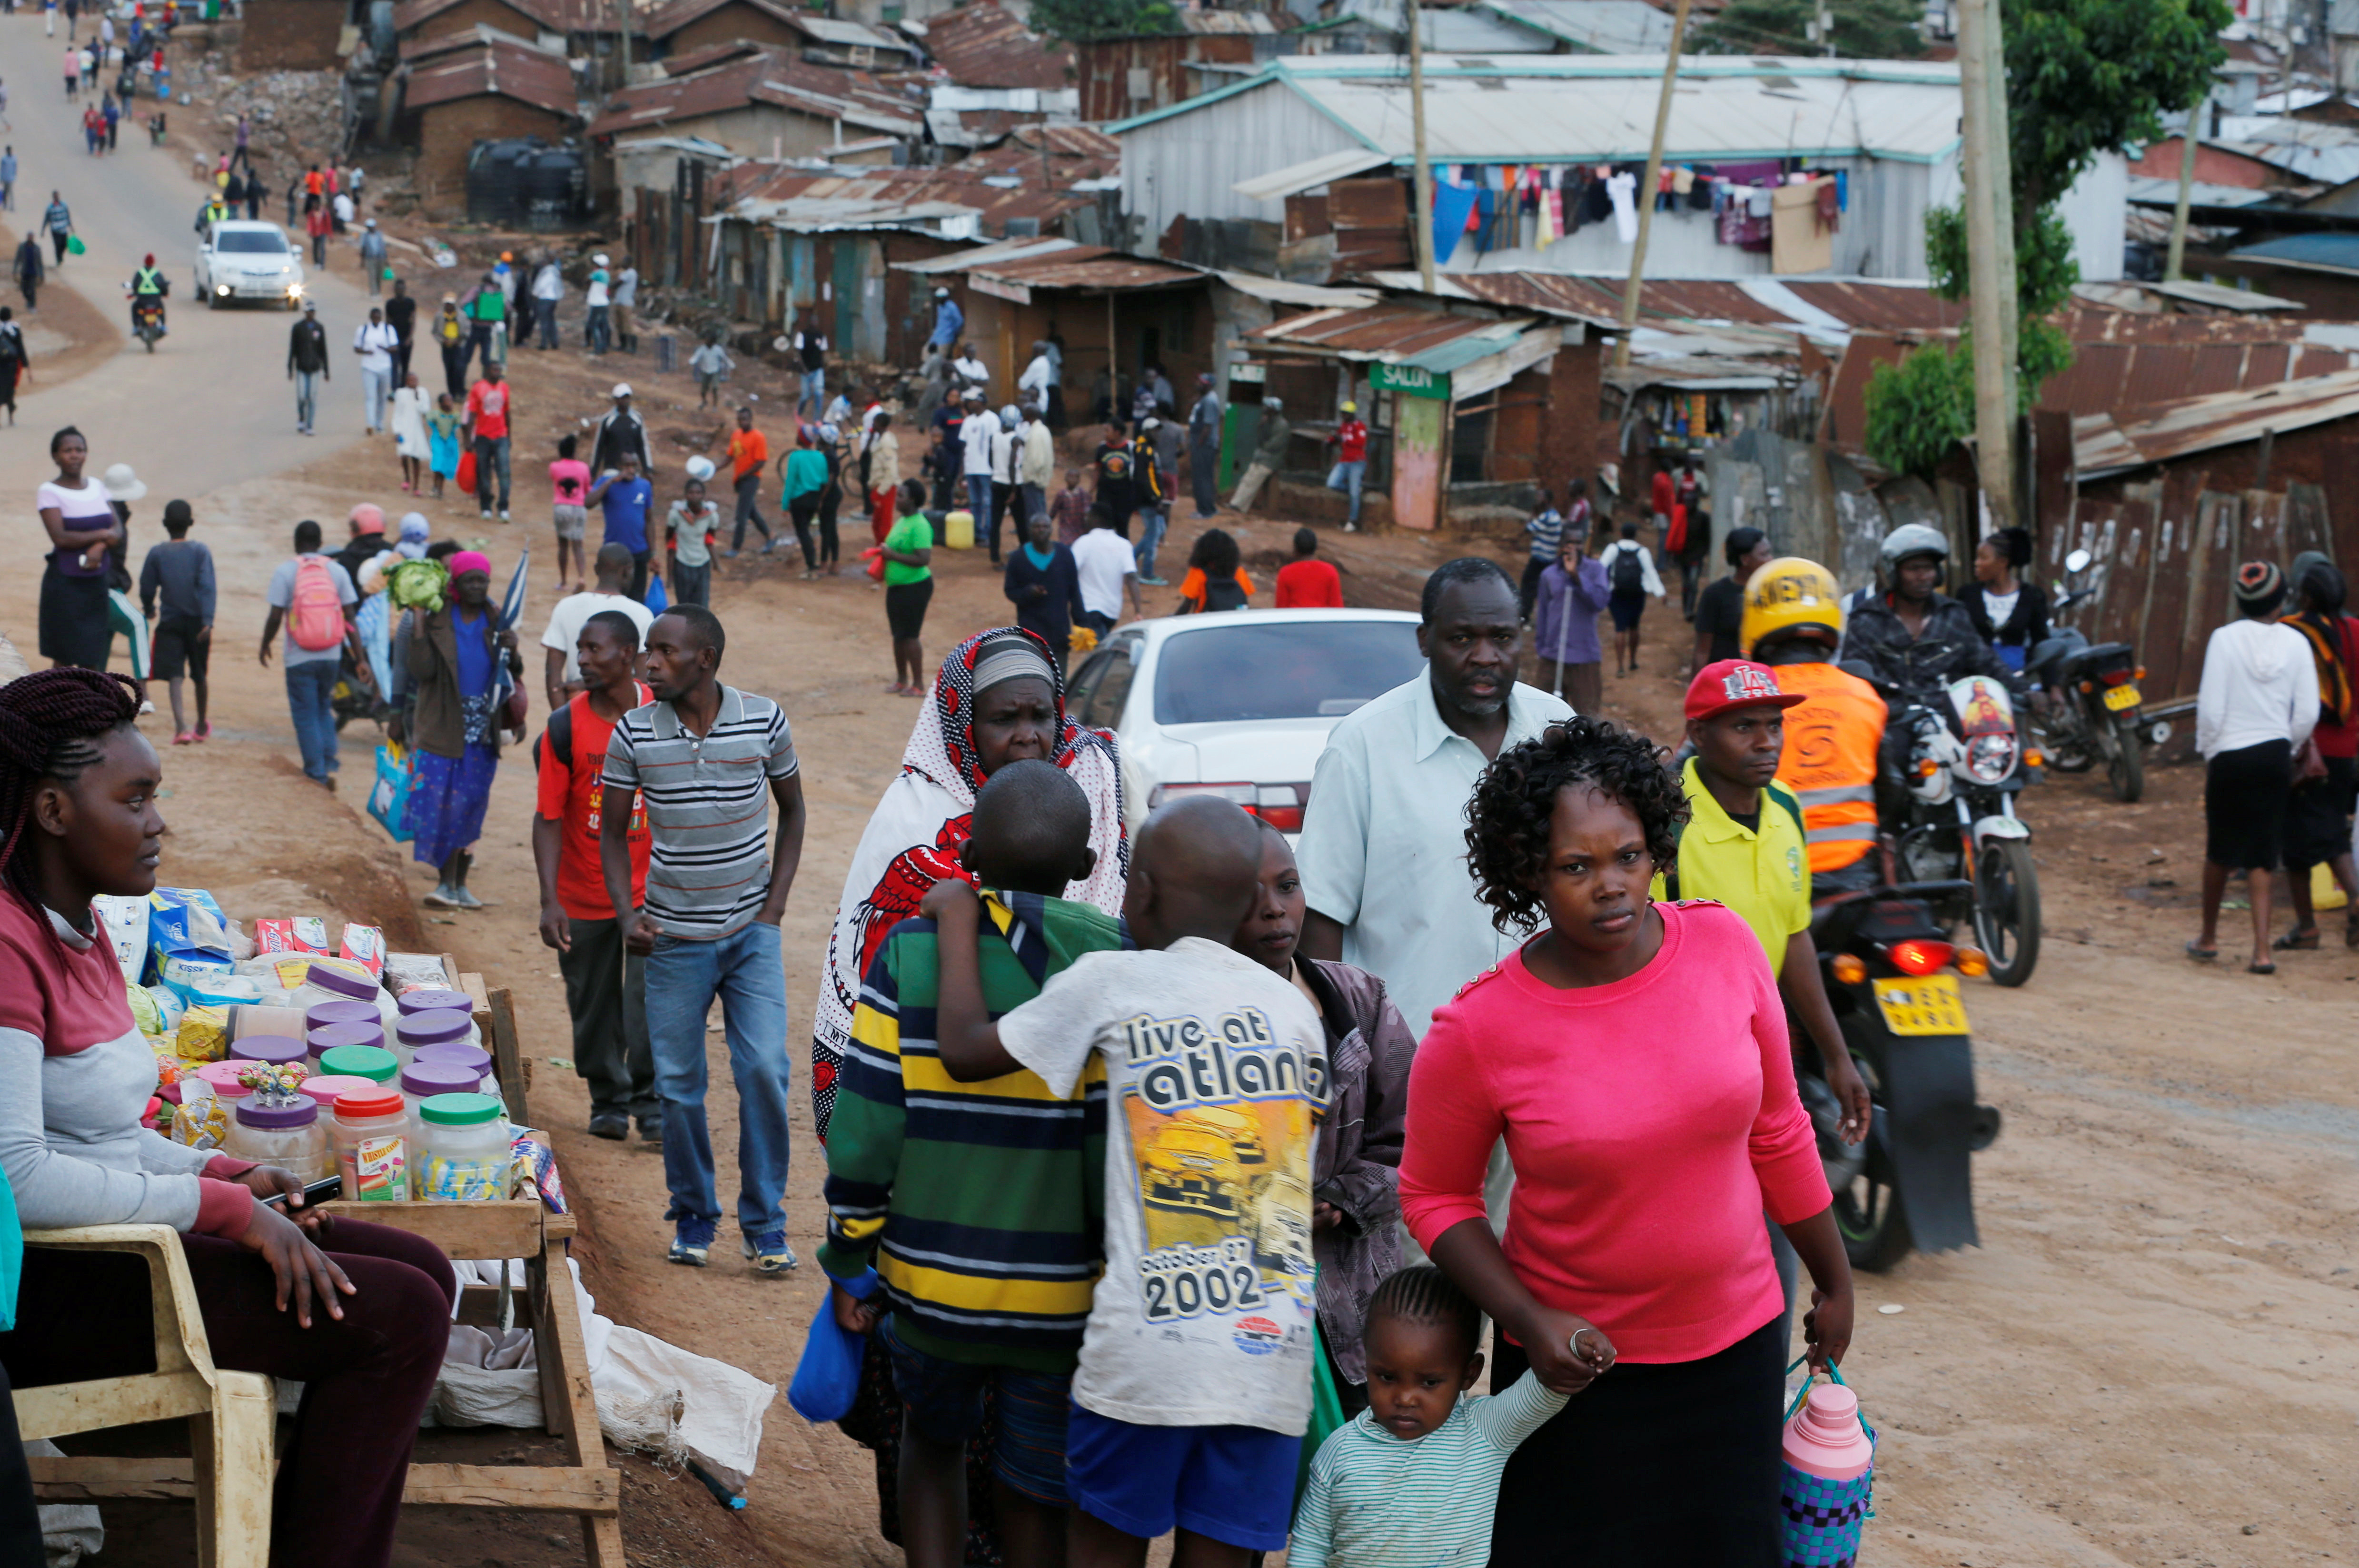 Civilians walk to their houses before a curfew which was ordered by the Kenya's President Uhuru Kenyatta to contain the spread of the coronavirus disease (COVID-19), within Kibera slums in Nairobi, Kenya March 27, 2020. REUTERS/Thomas Mukoya - RC2ISF9WVFQ6